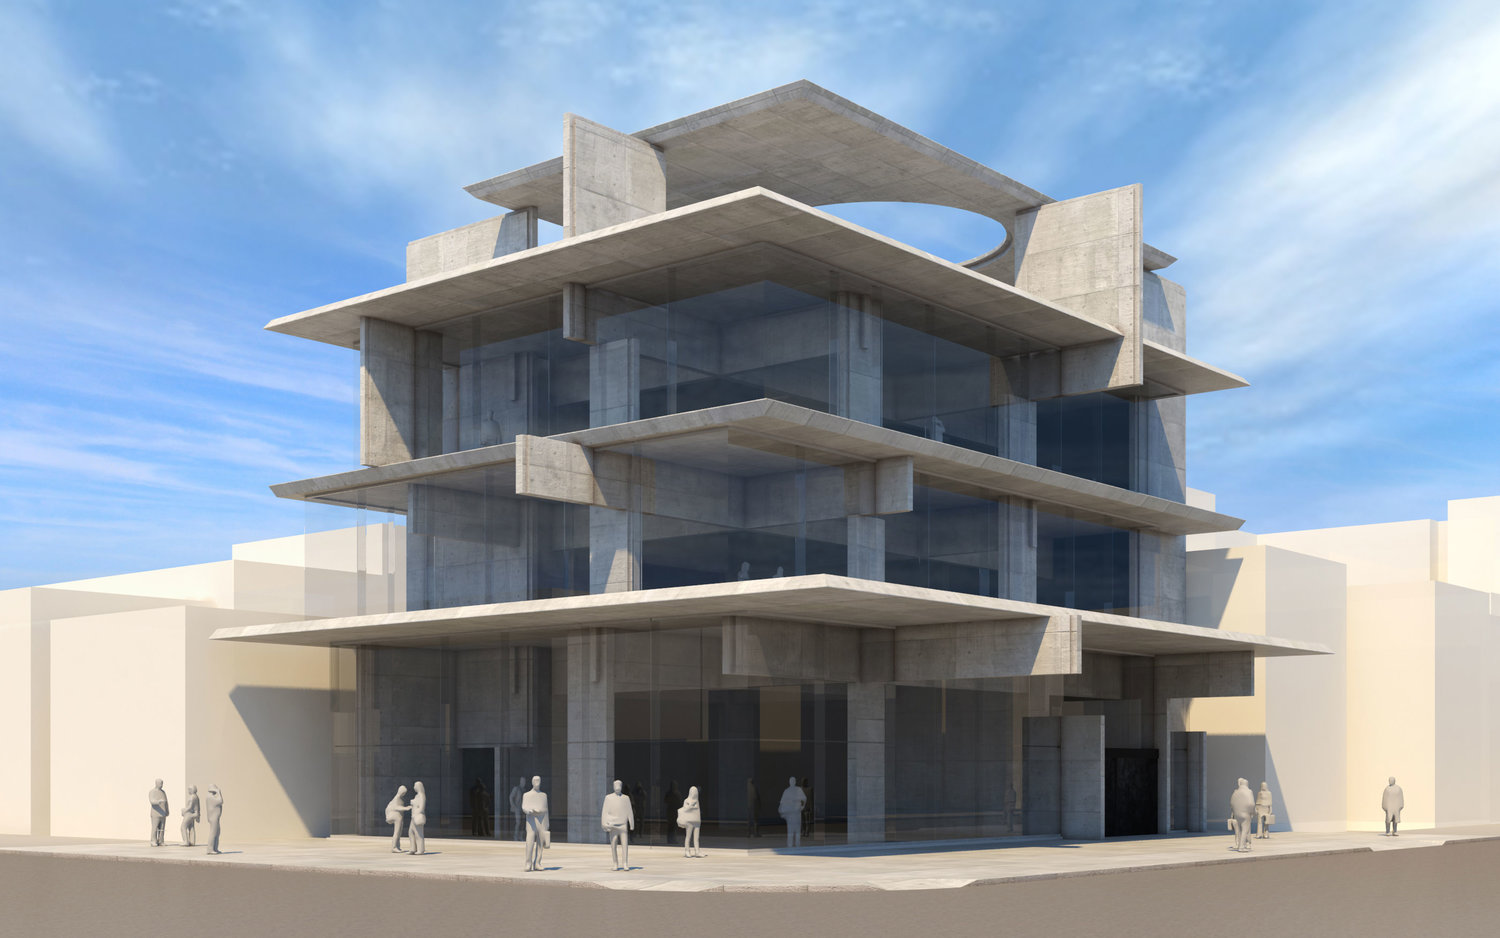 Trendy New Bluarch Architecture-Designed Commercial Project Revealed in Astoria